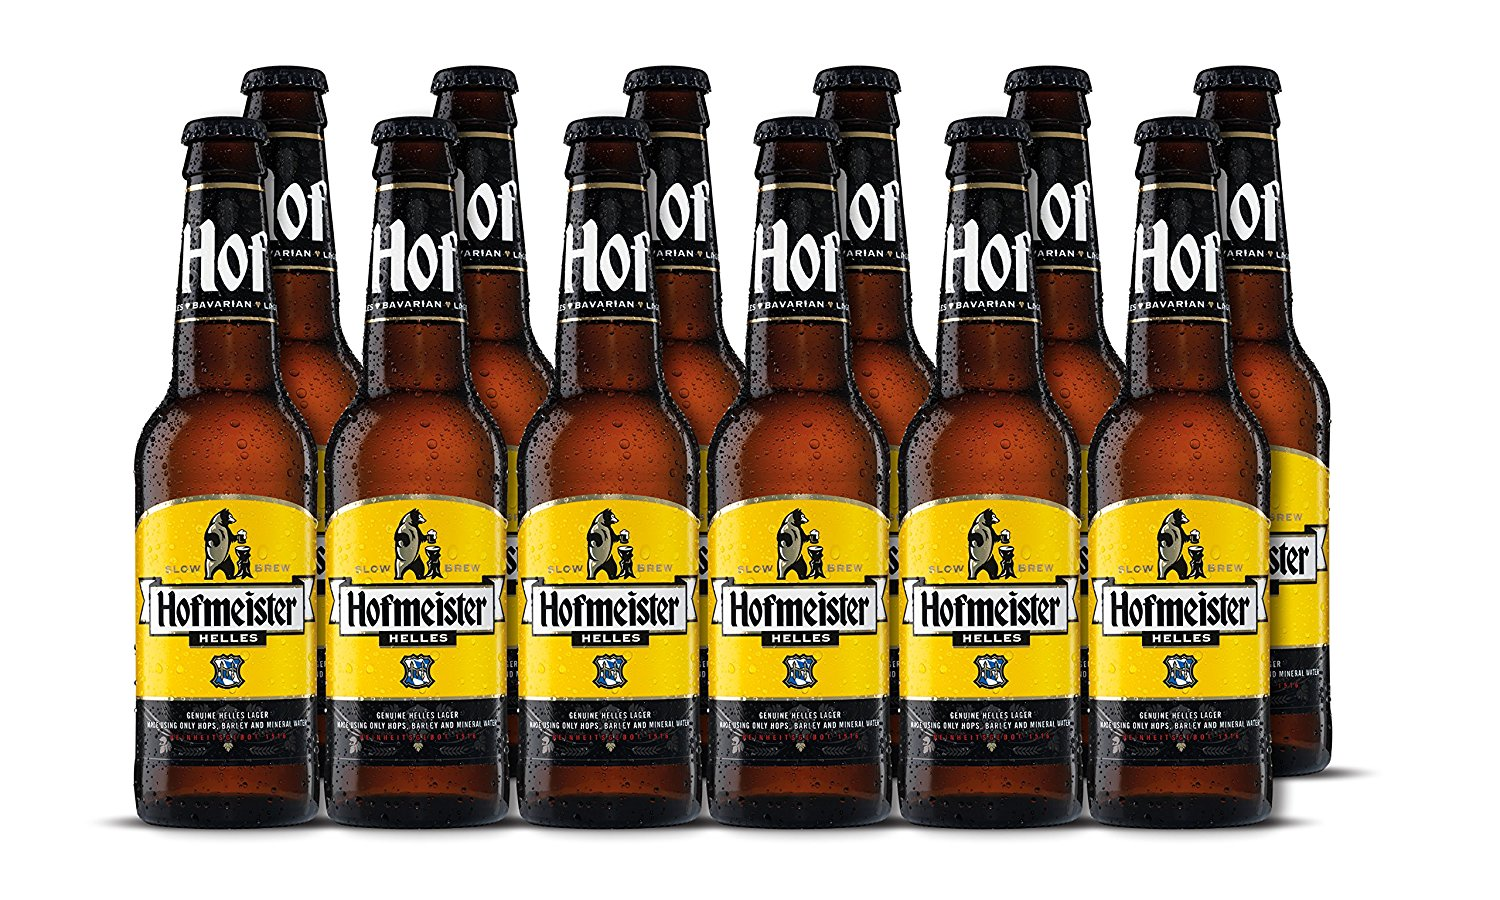 Bottles of Hofmeister Lager